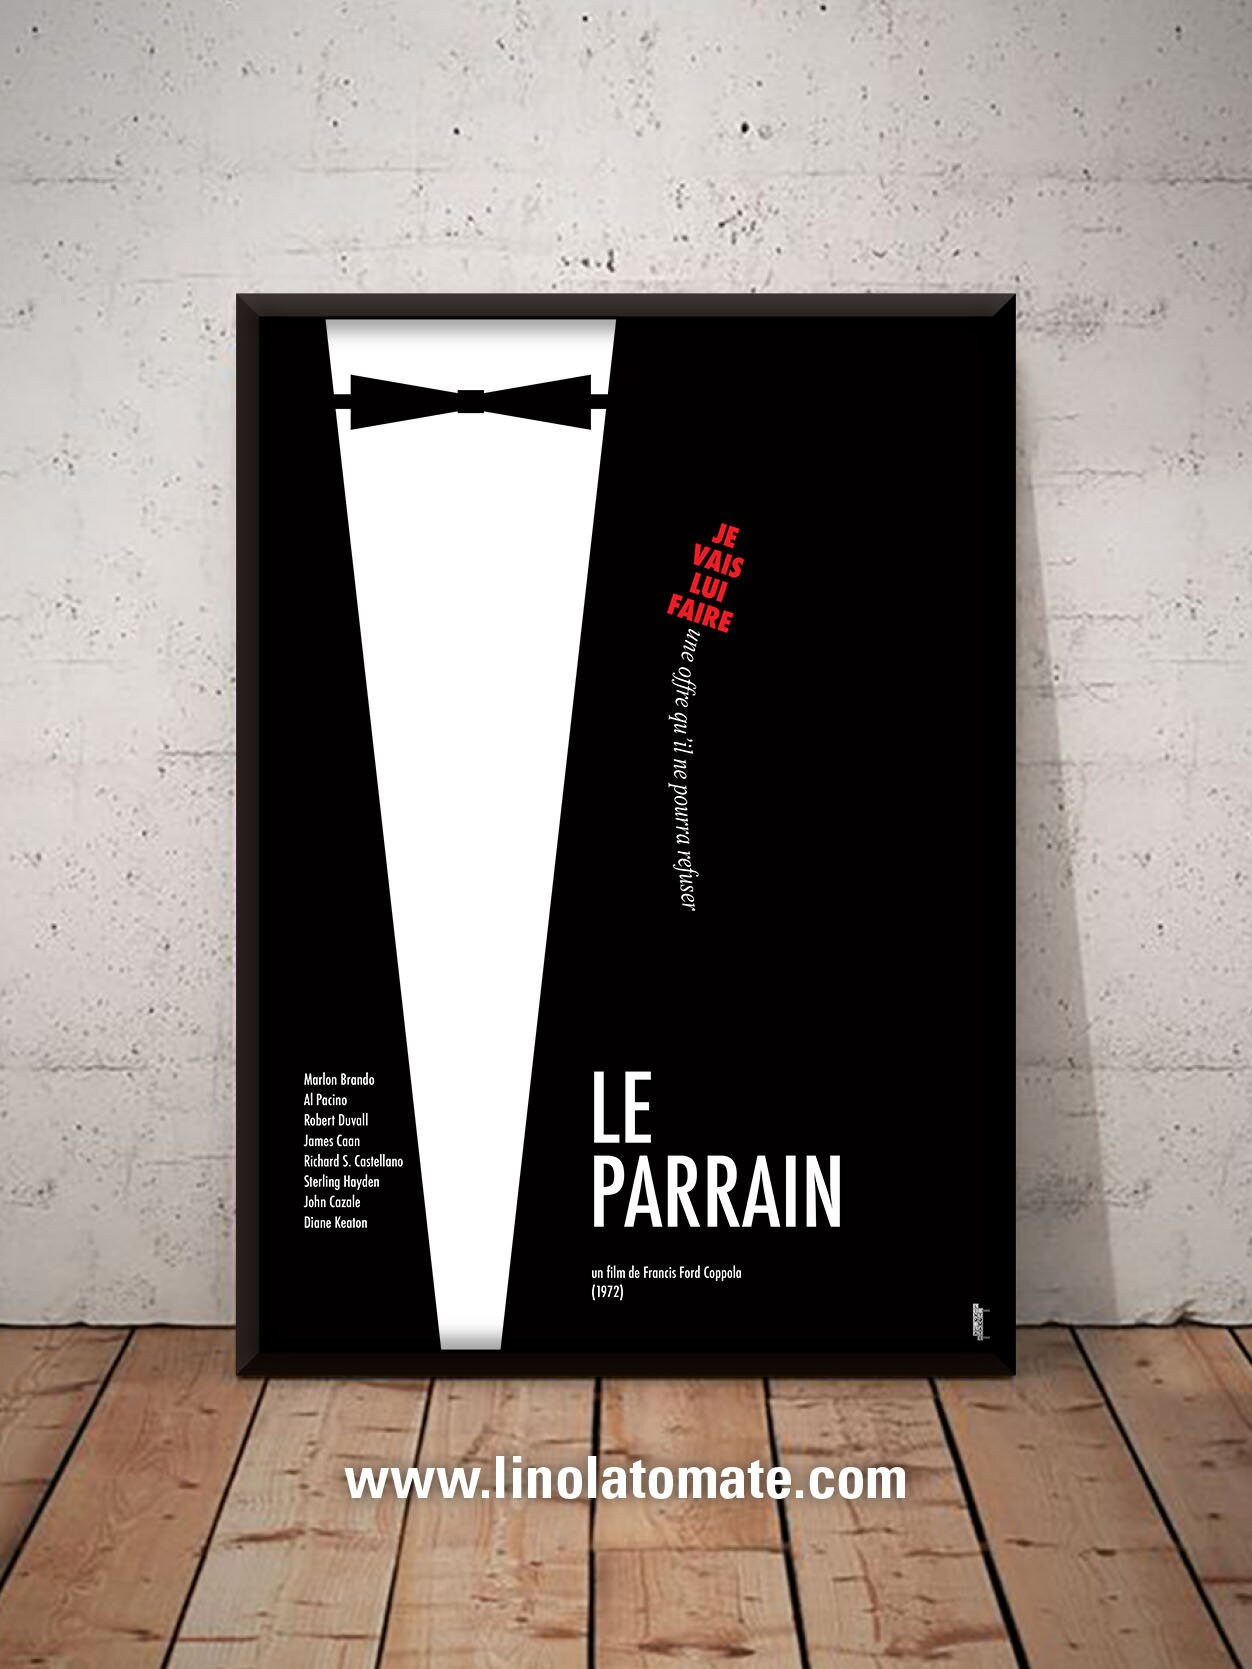 Le Parrain The Godfather L Affiche Revisit 233 E Par Lino